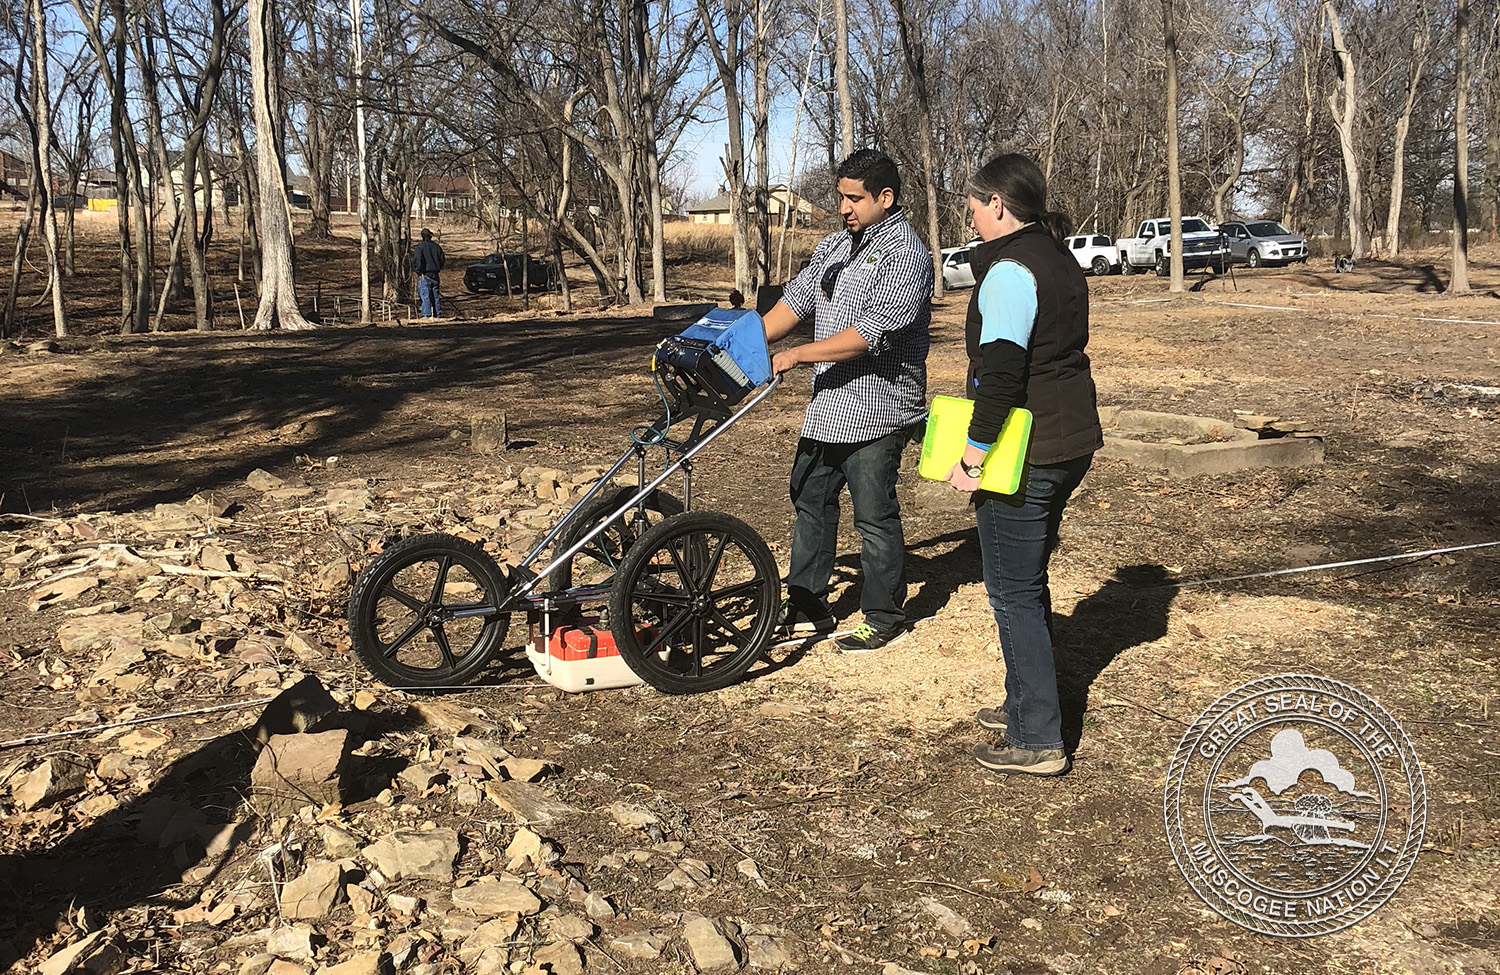 MCN assists in clean up, surveying of unmarked graves